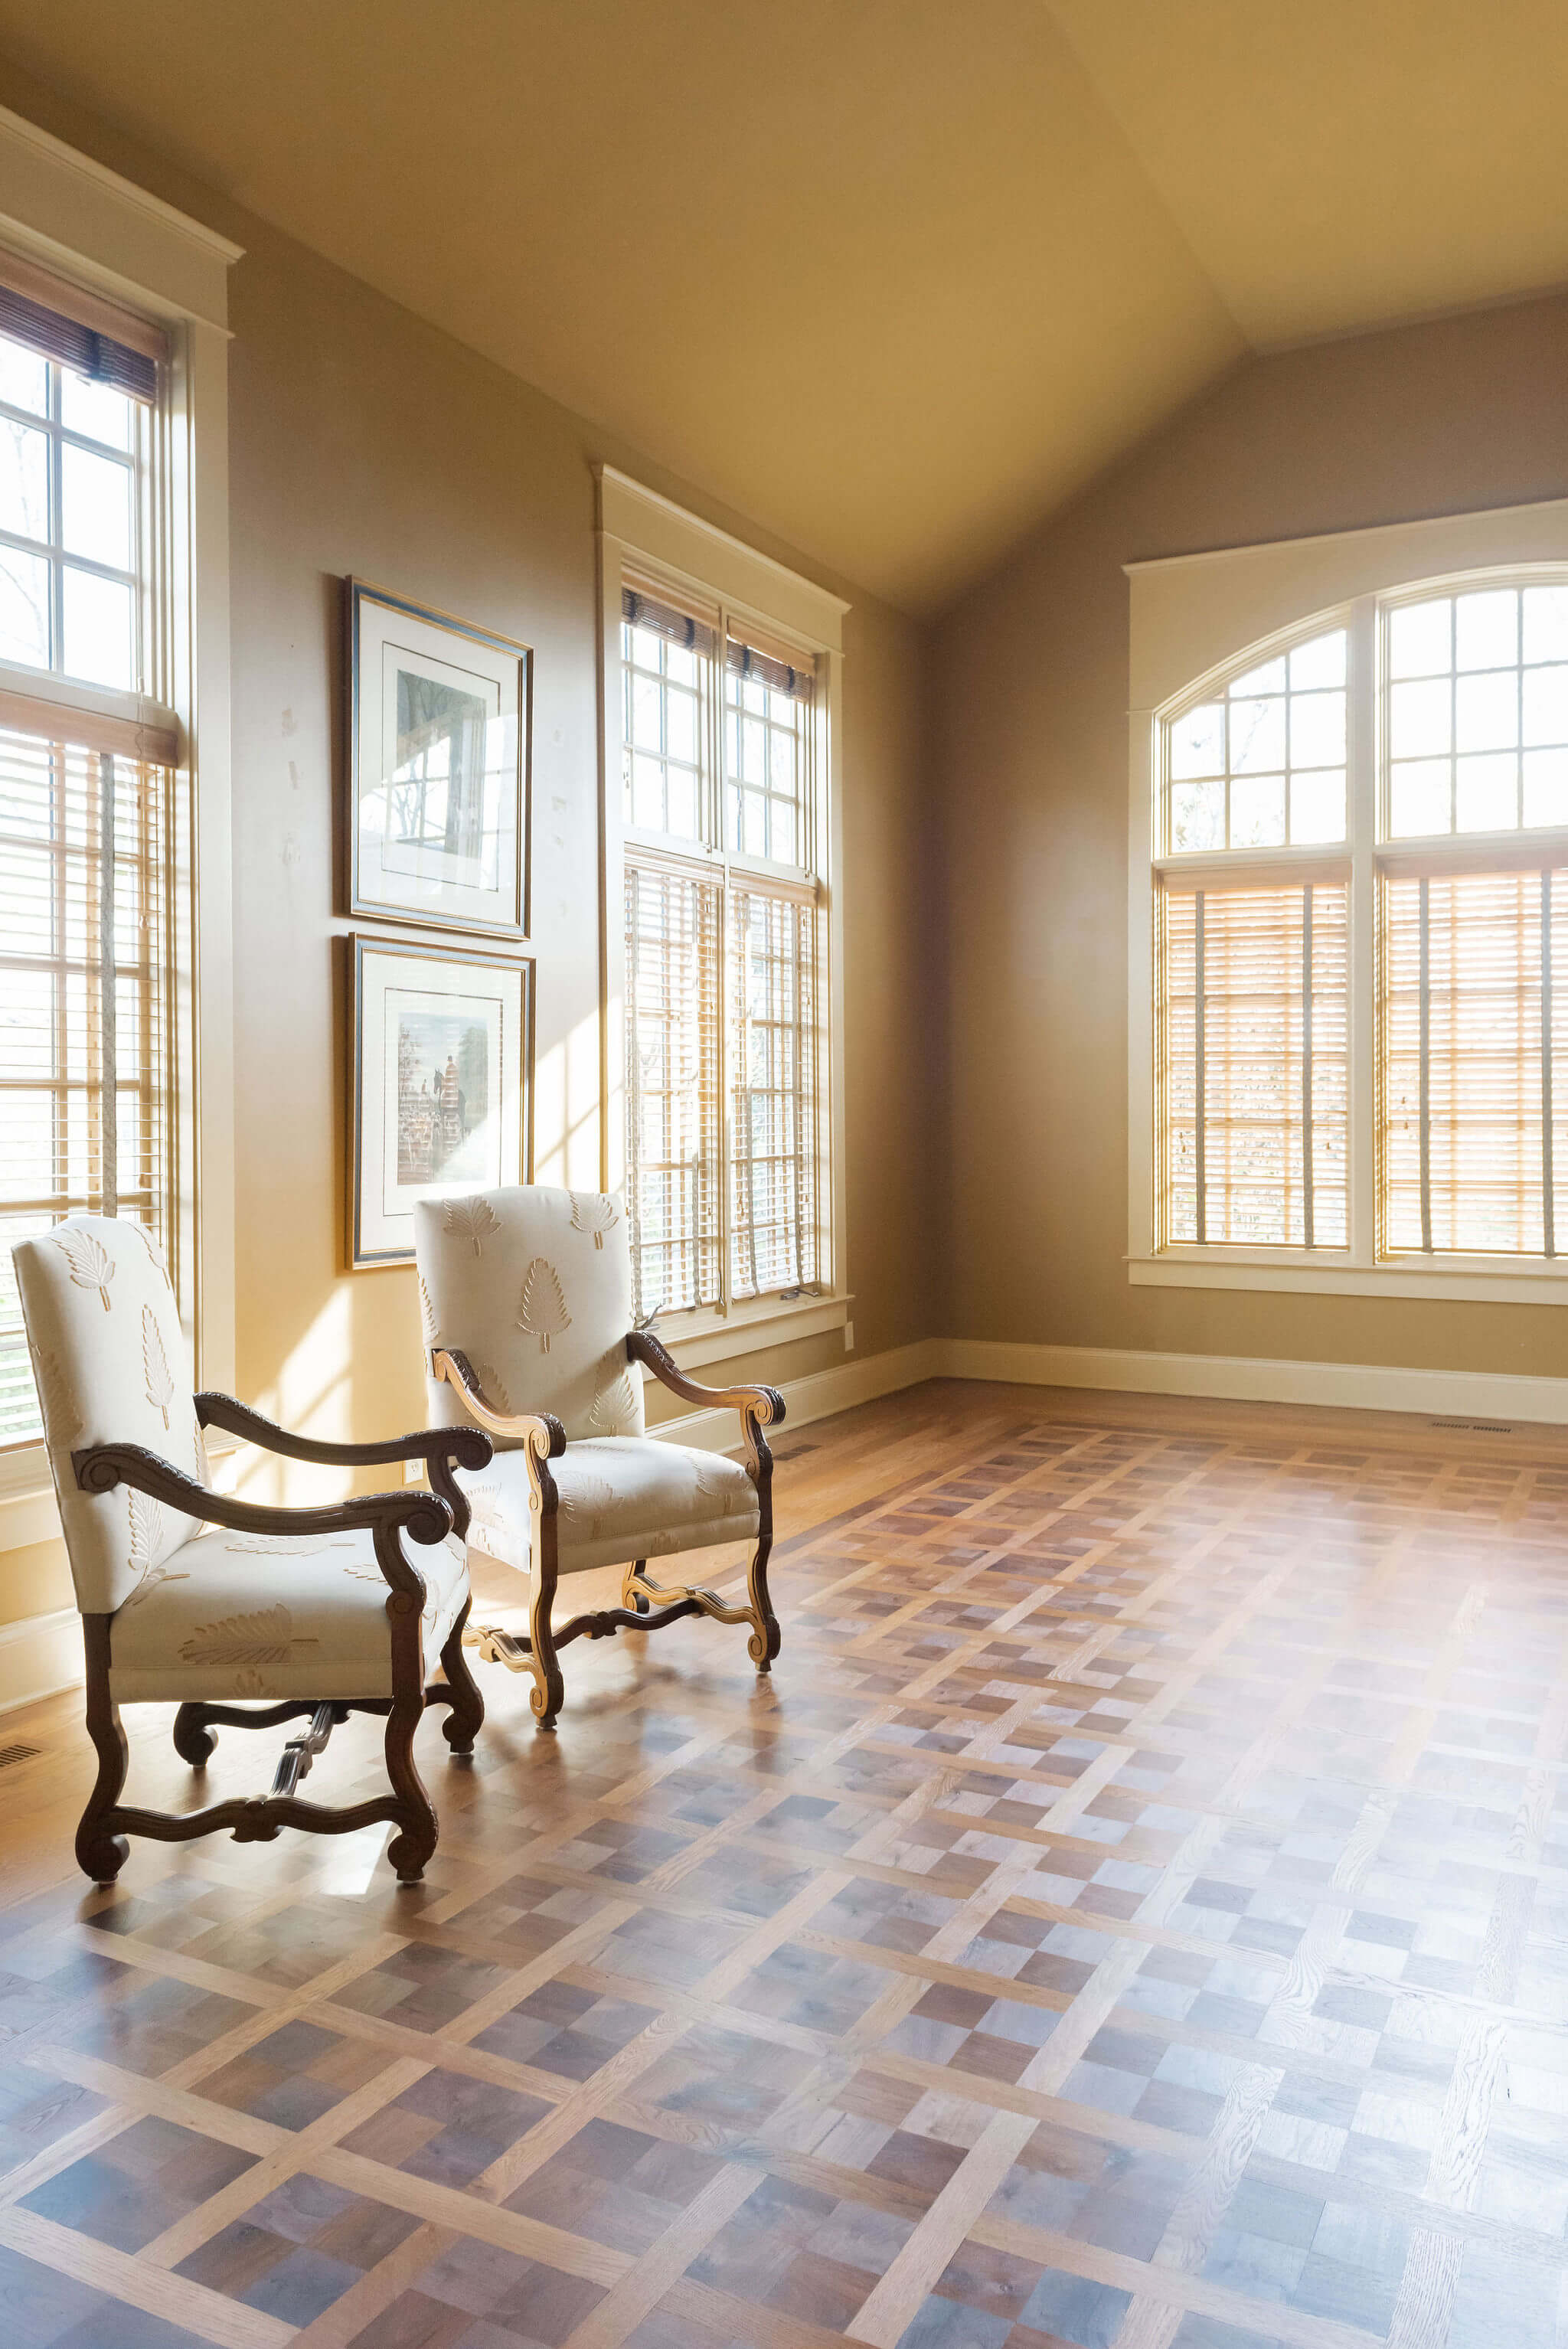 Beautiful lighting accentuates a stunning parquet floor finished with a hardwax oil finish.